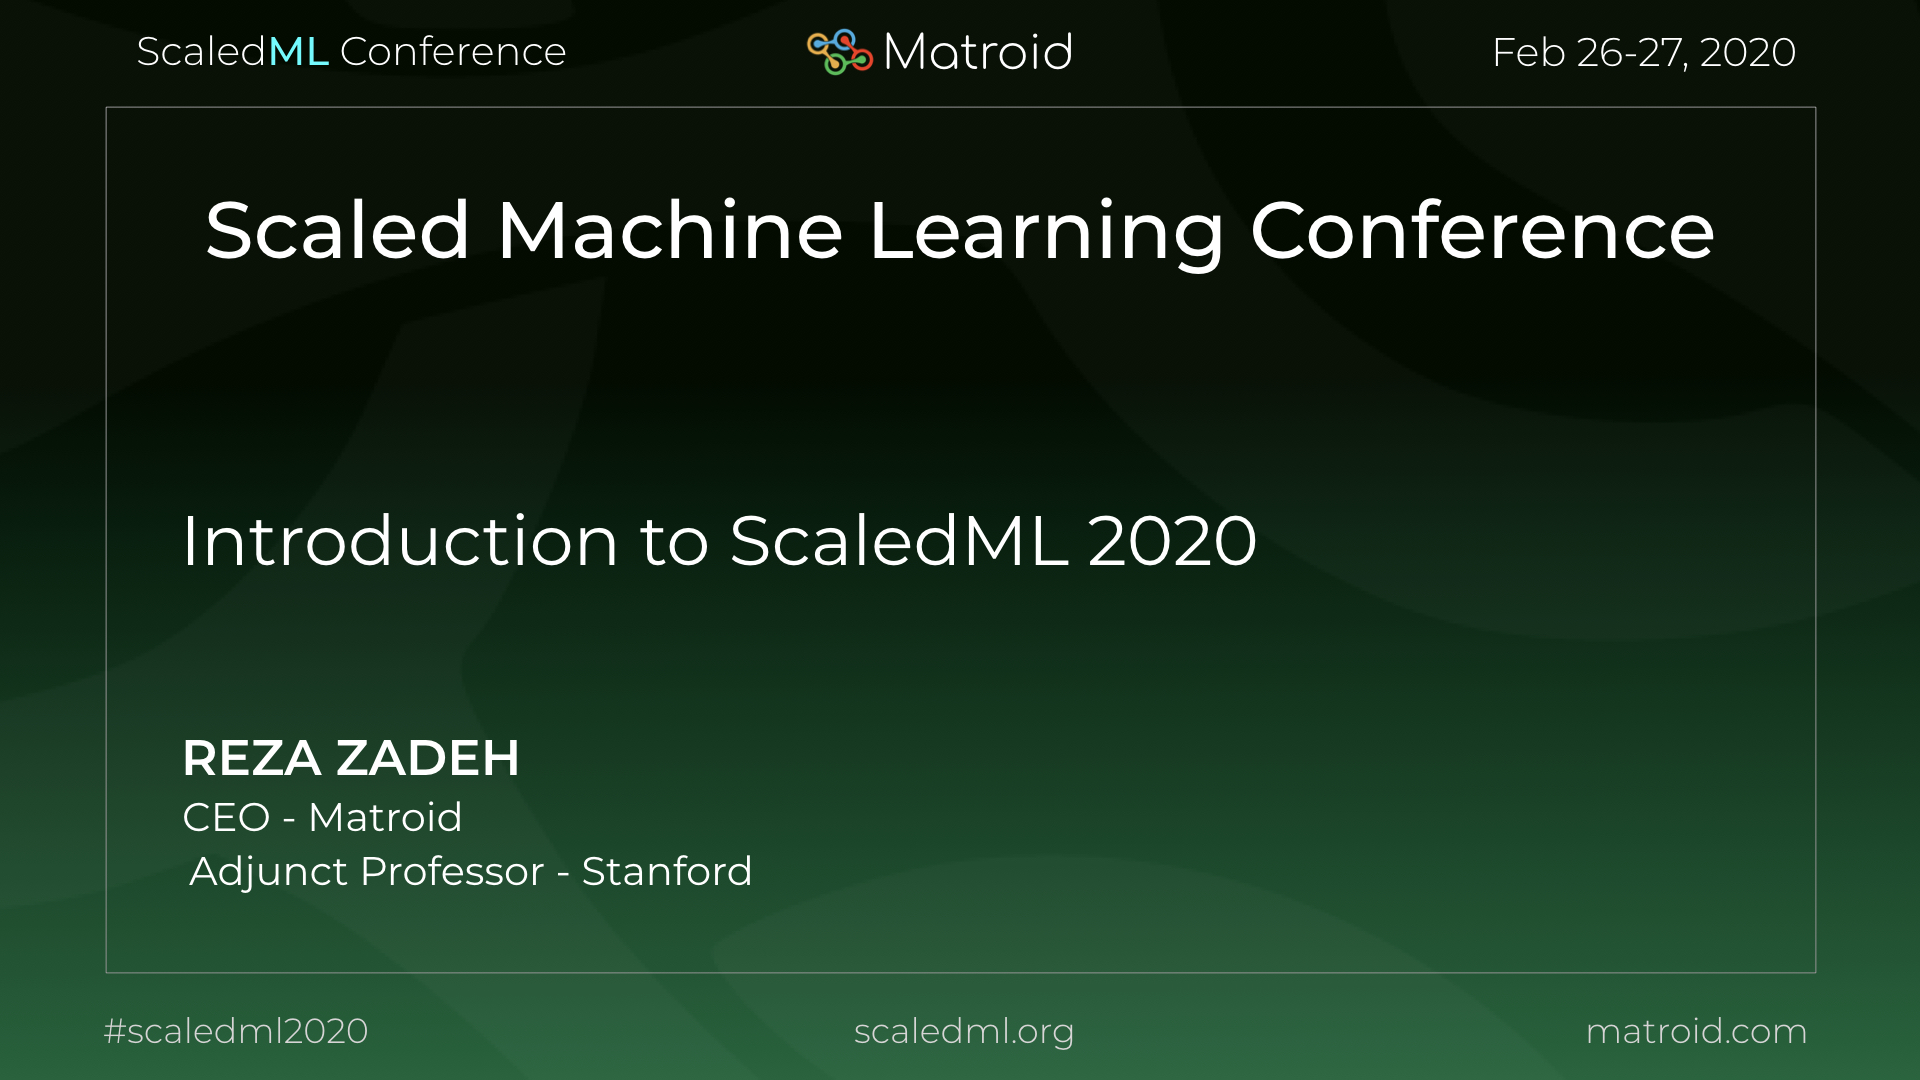 Reza Zadeh Matroid ScaledML Conference CPU GPU Computer Vision AI Artificial Intelligence Machine Learning TPU